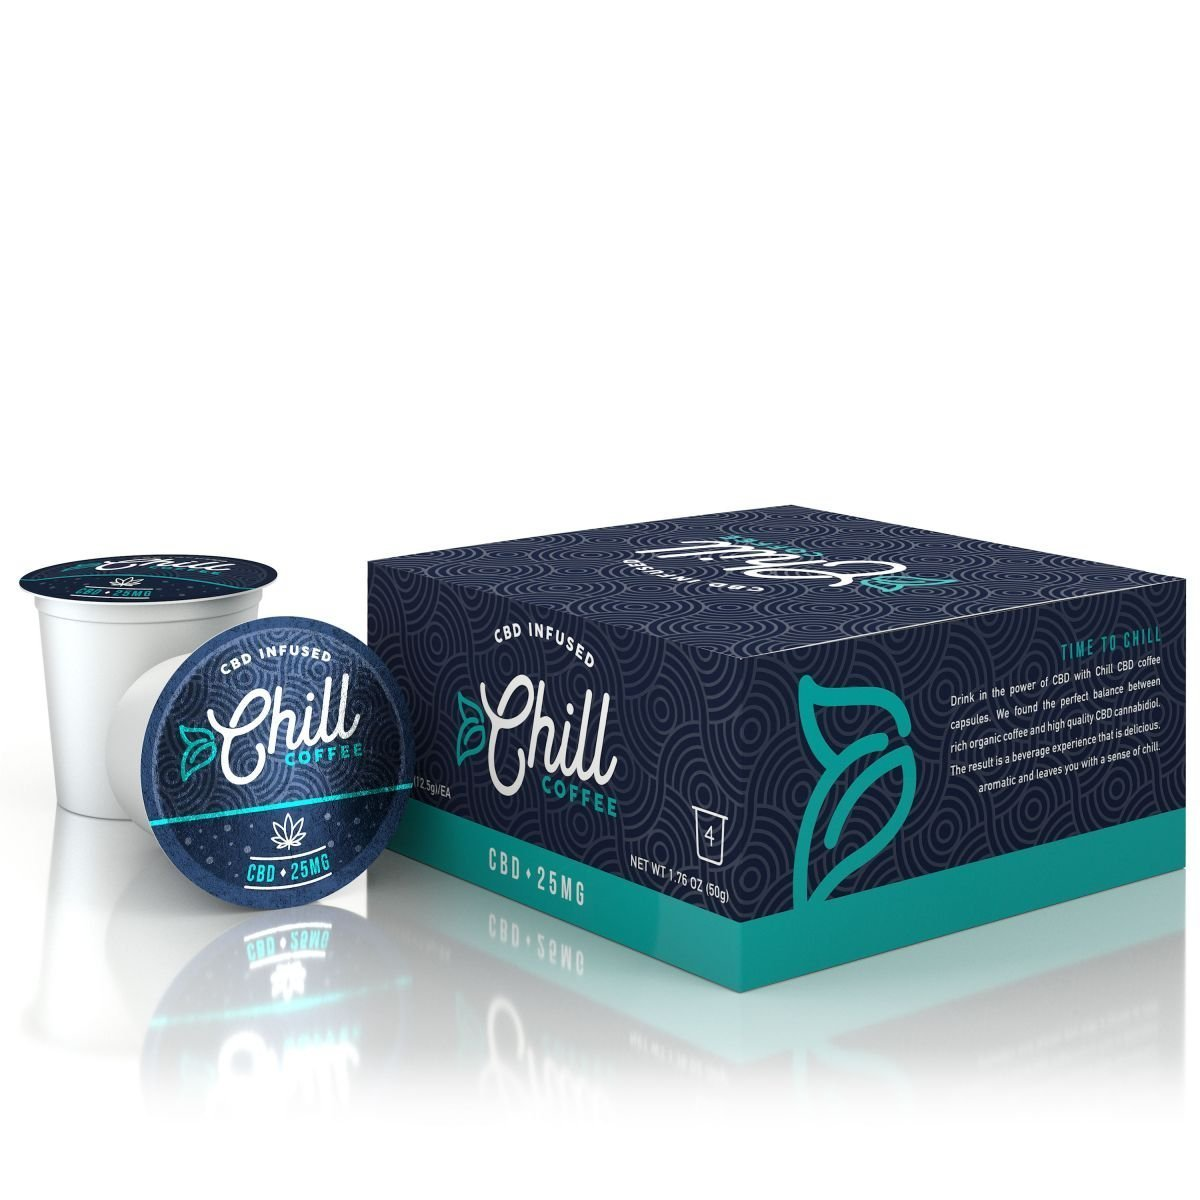 Diamond CBD Chill CBD Coffee 4 pack